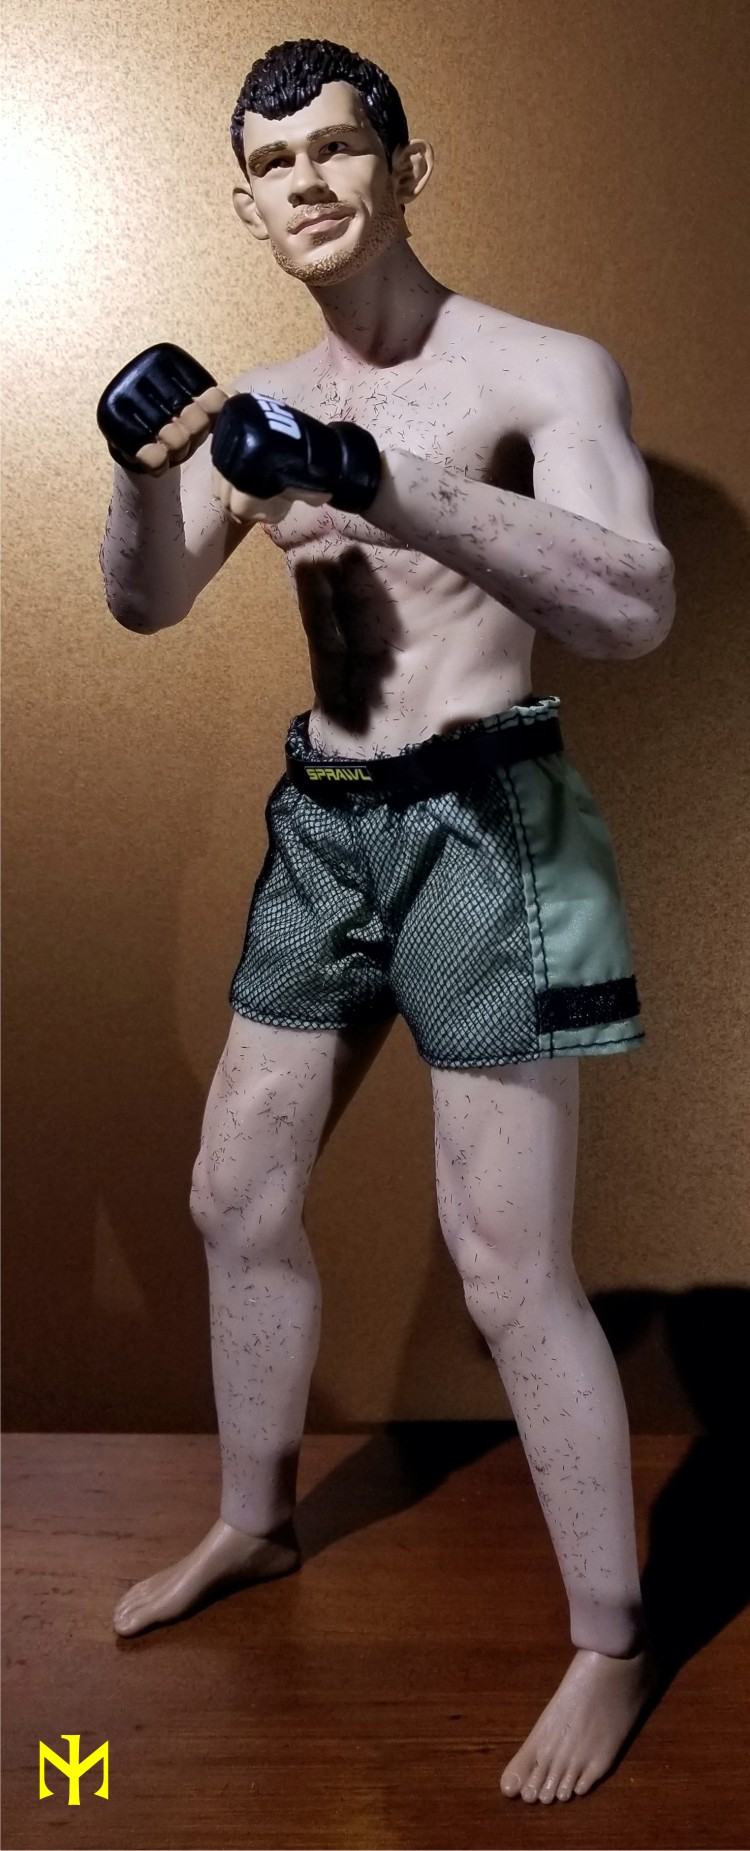 ufc - Kitbash UFC Champion Forrest Griffin Forgri24